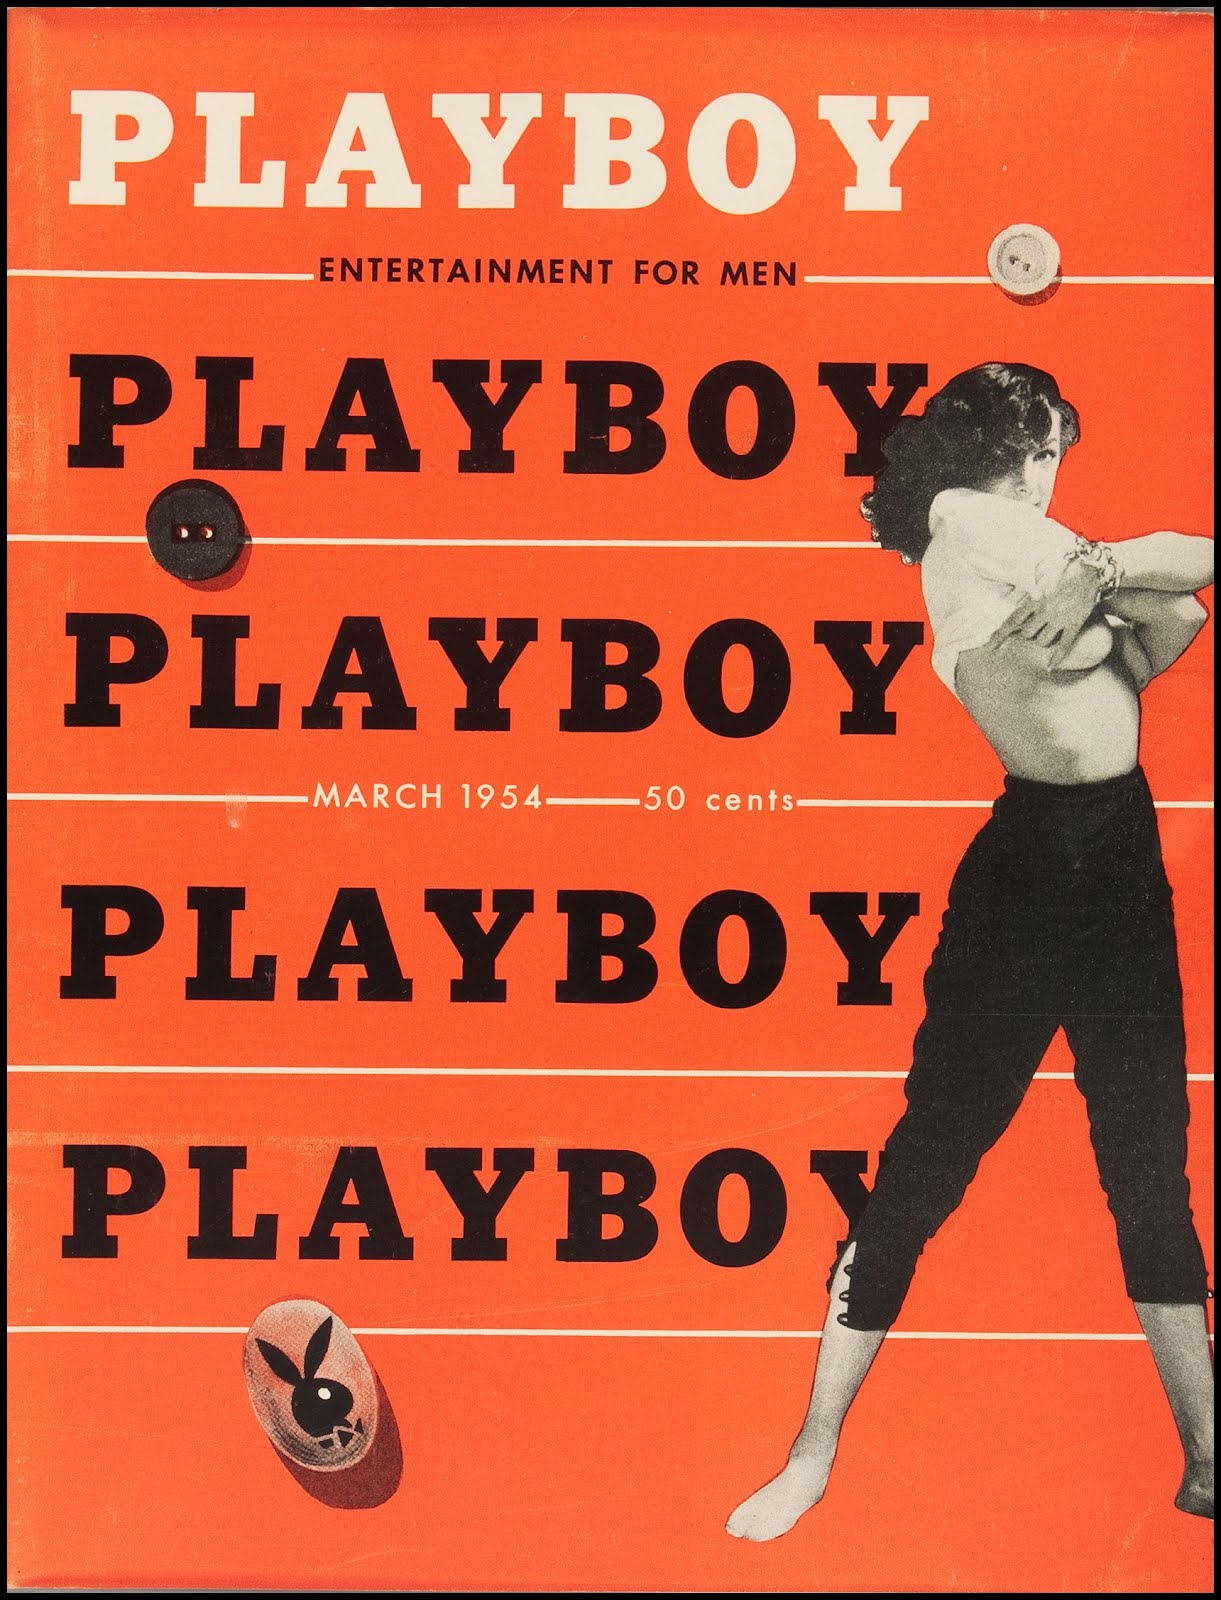 Playboy (USA) Vintage Magazine Back Issue Dated March 1954